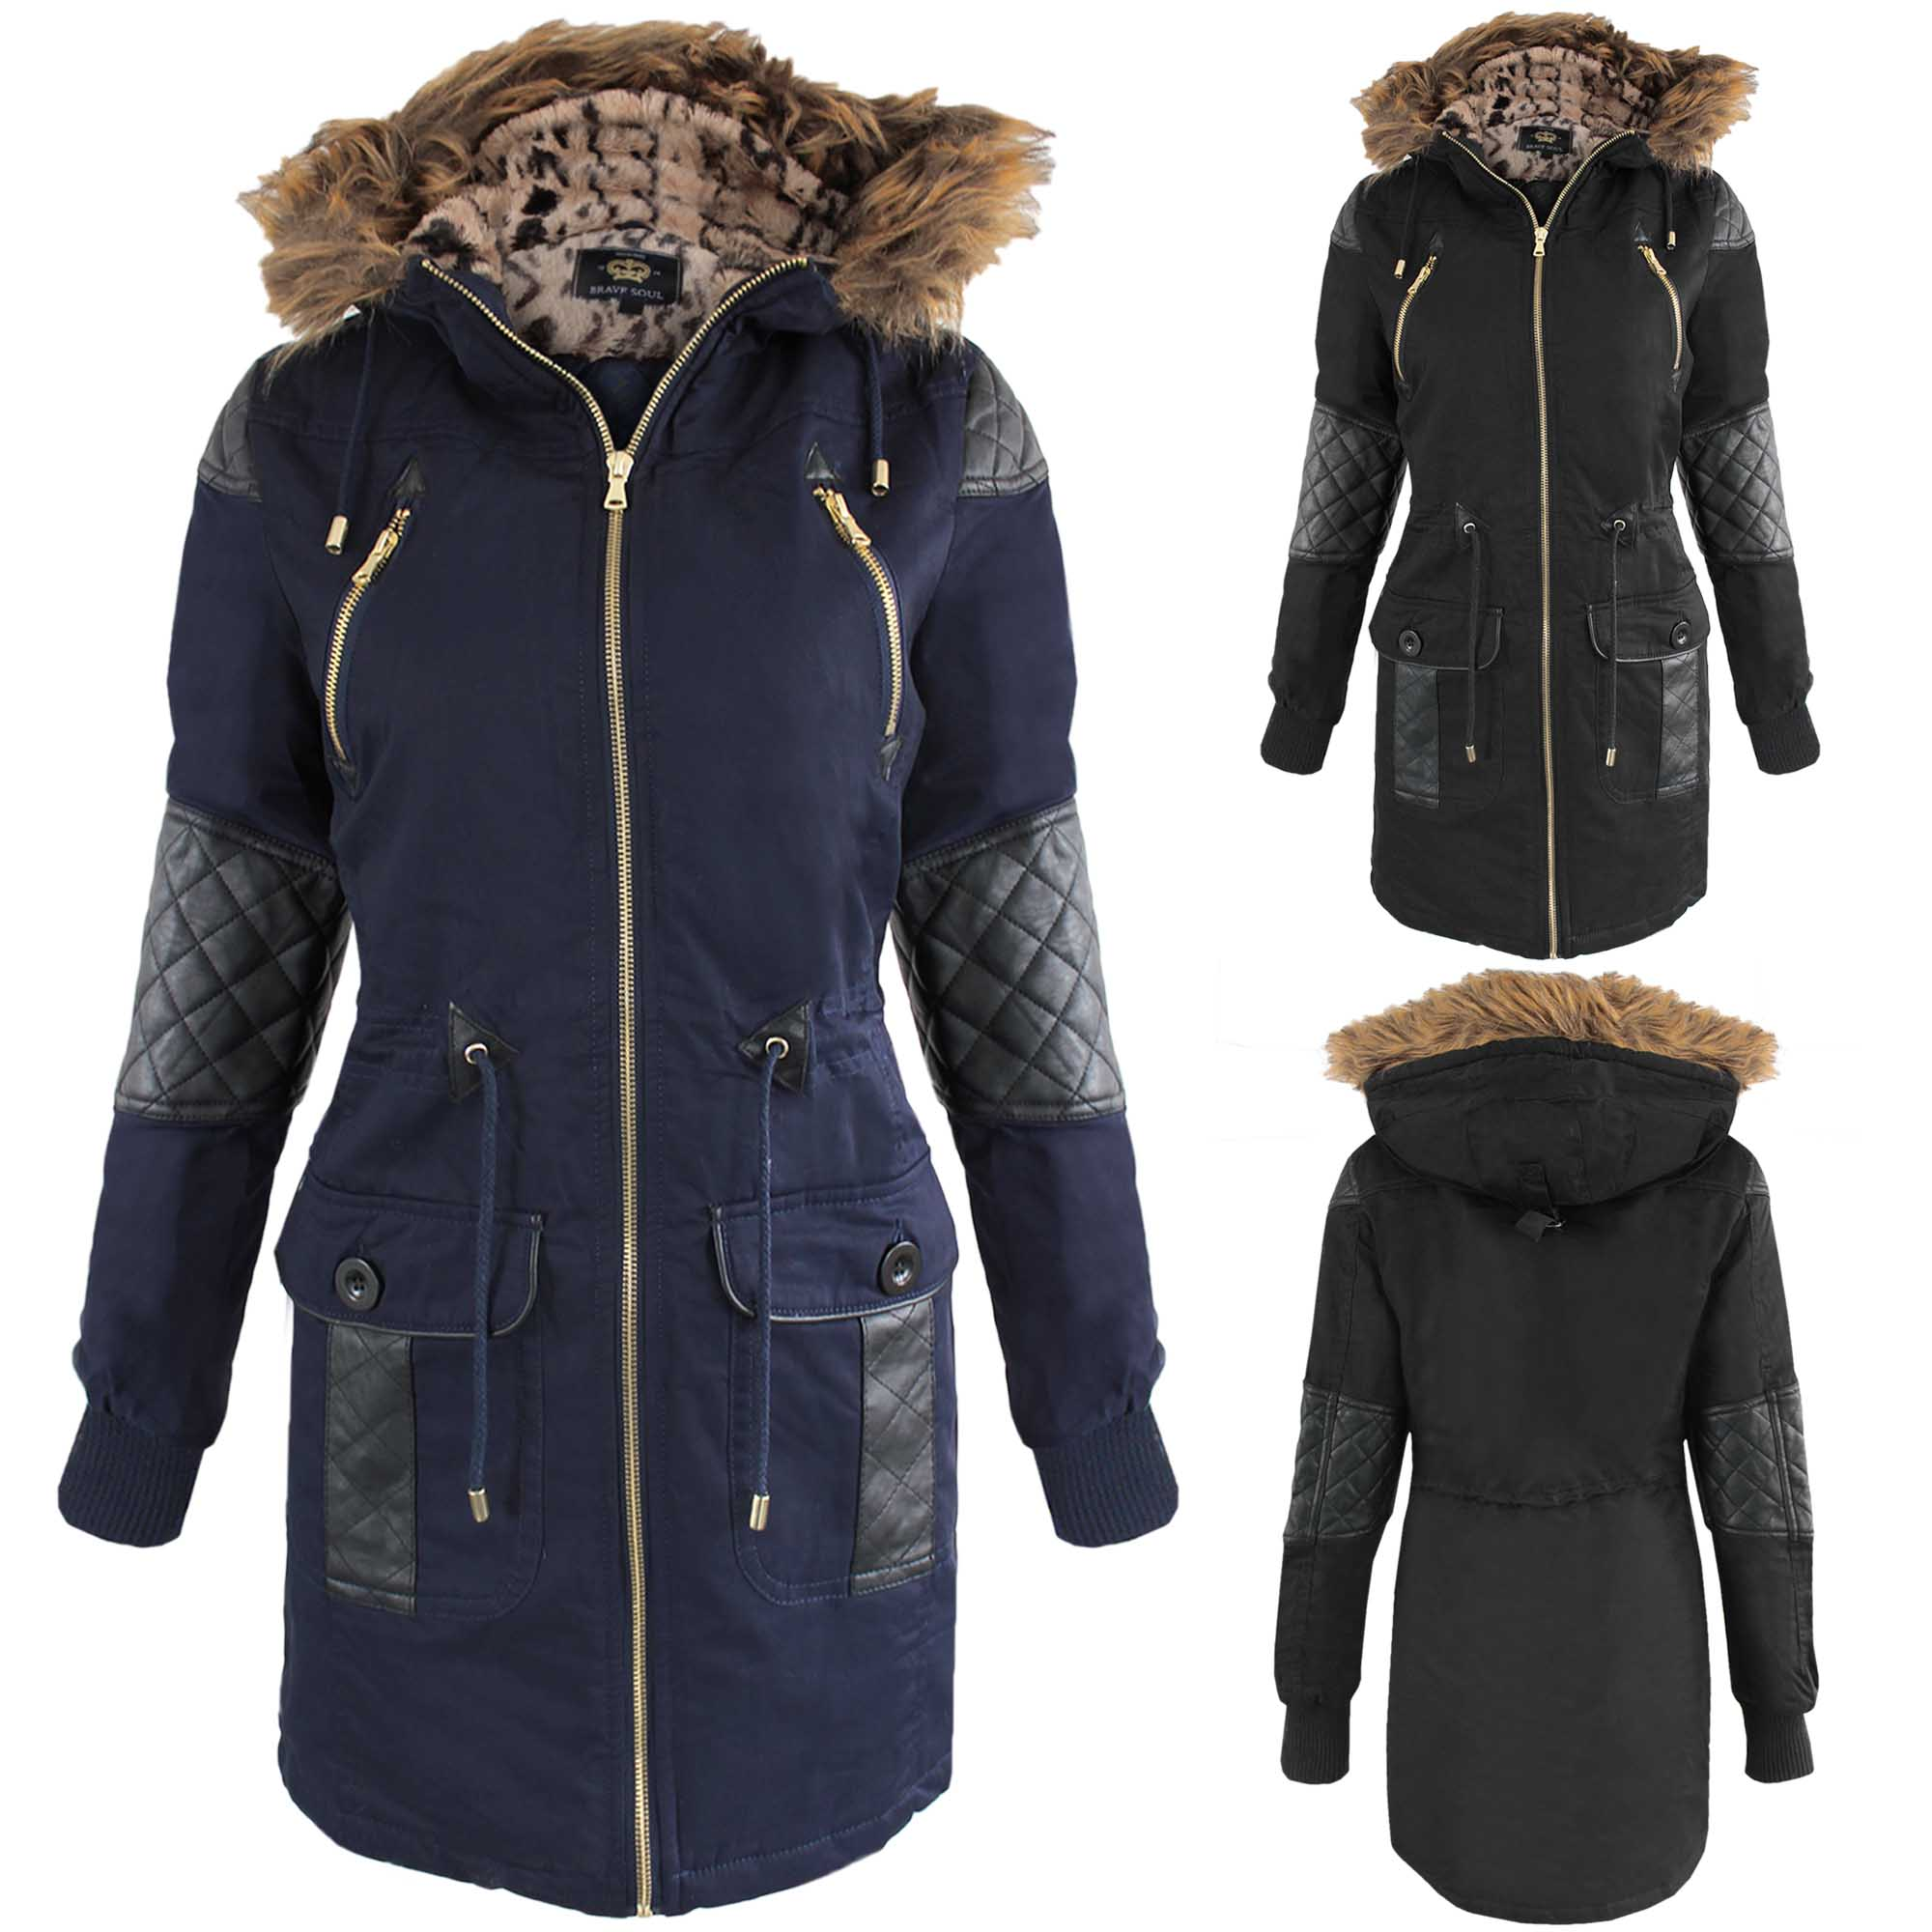 neu damen schwarz pu rand pelzfutter kapuze parka jacke mantel milit r look ebay. Black Bedroom Furniture Sets. Home Design Ideas